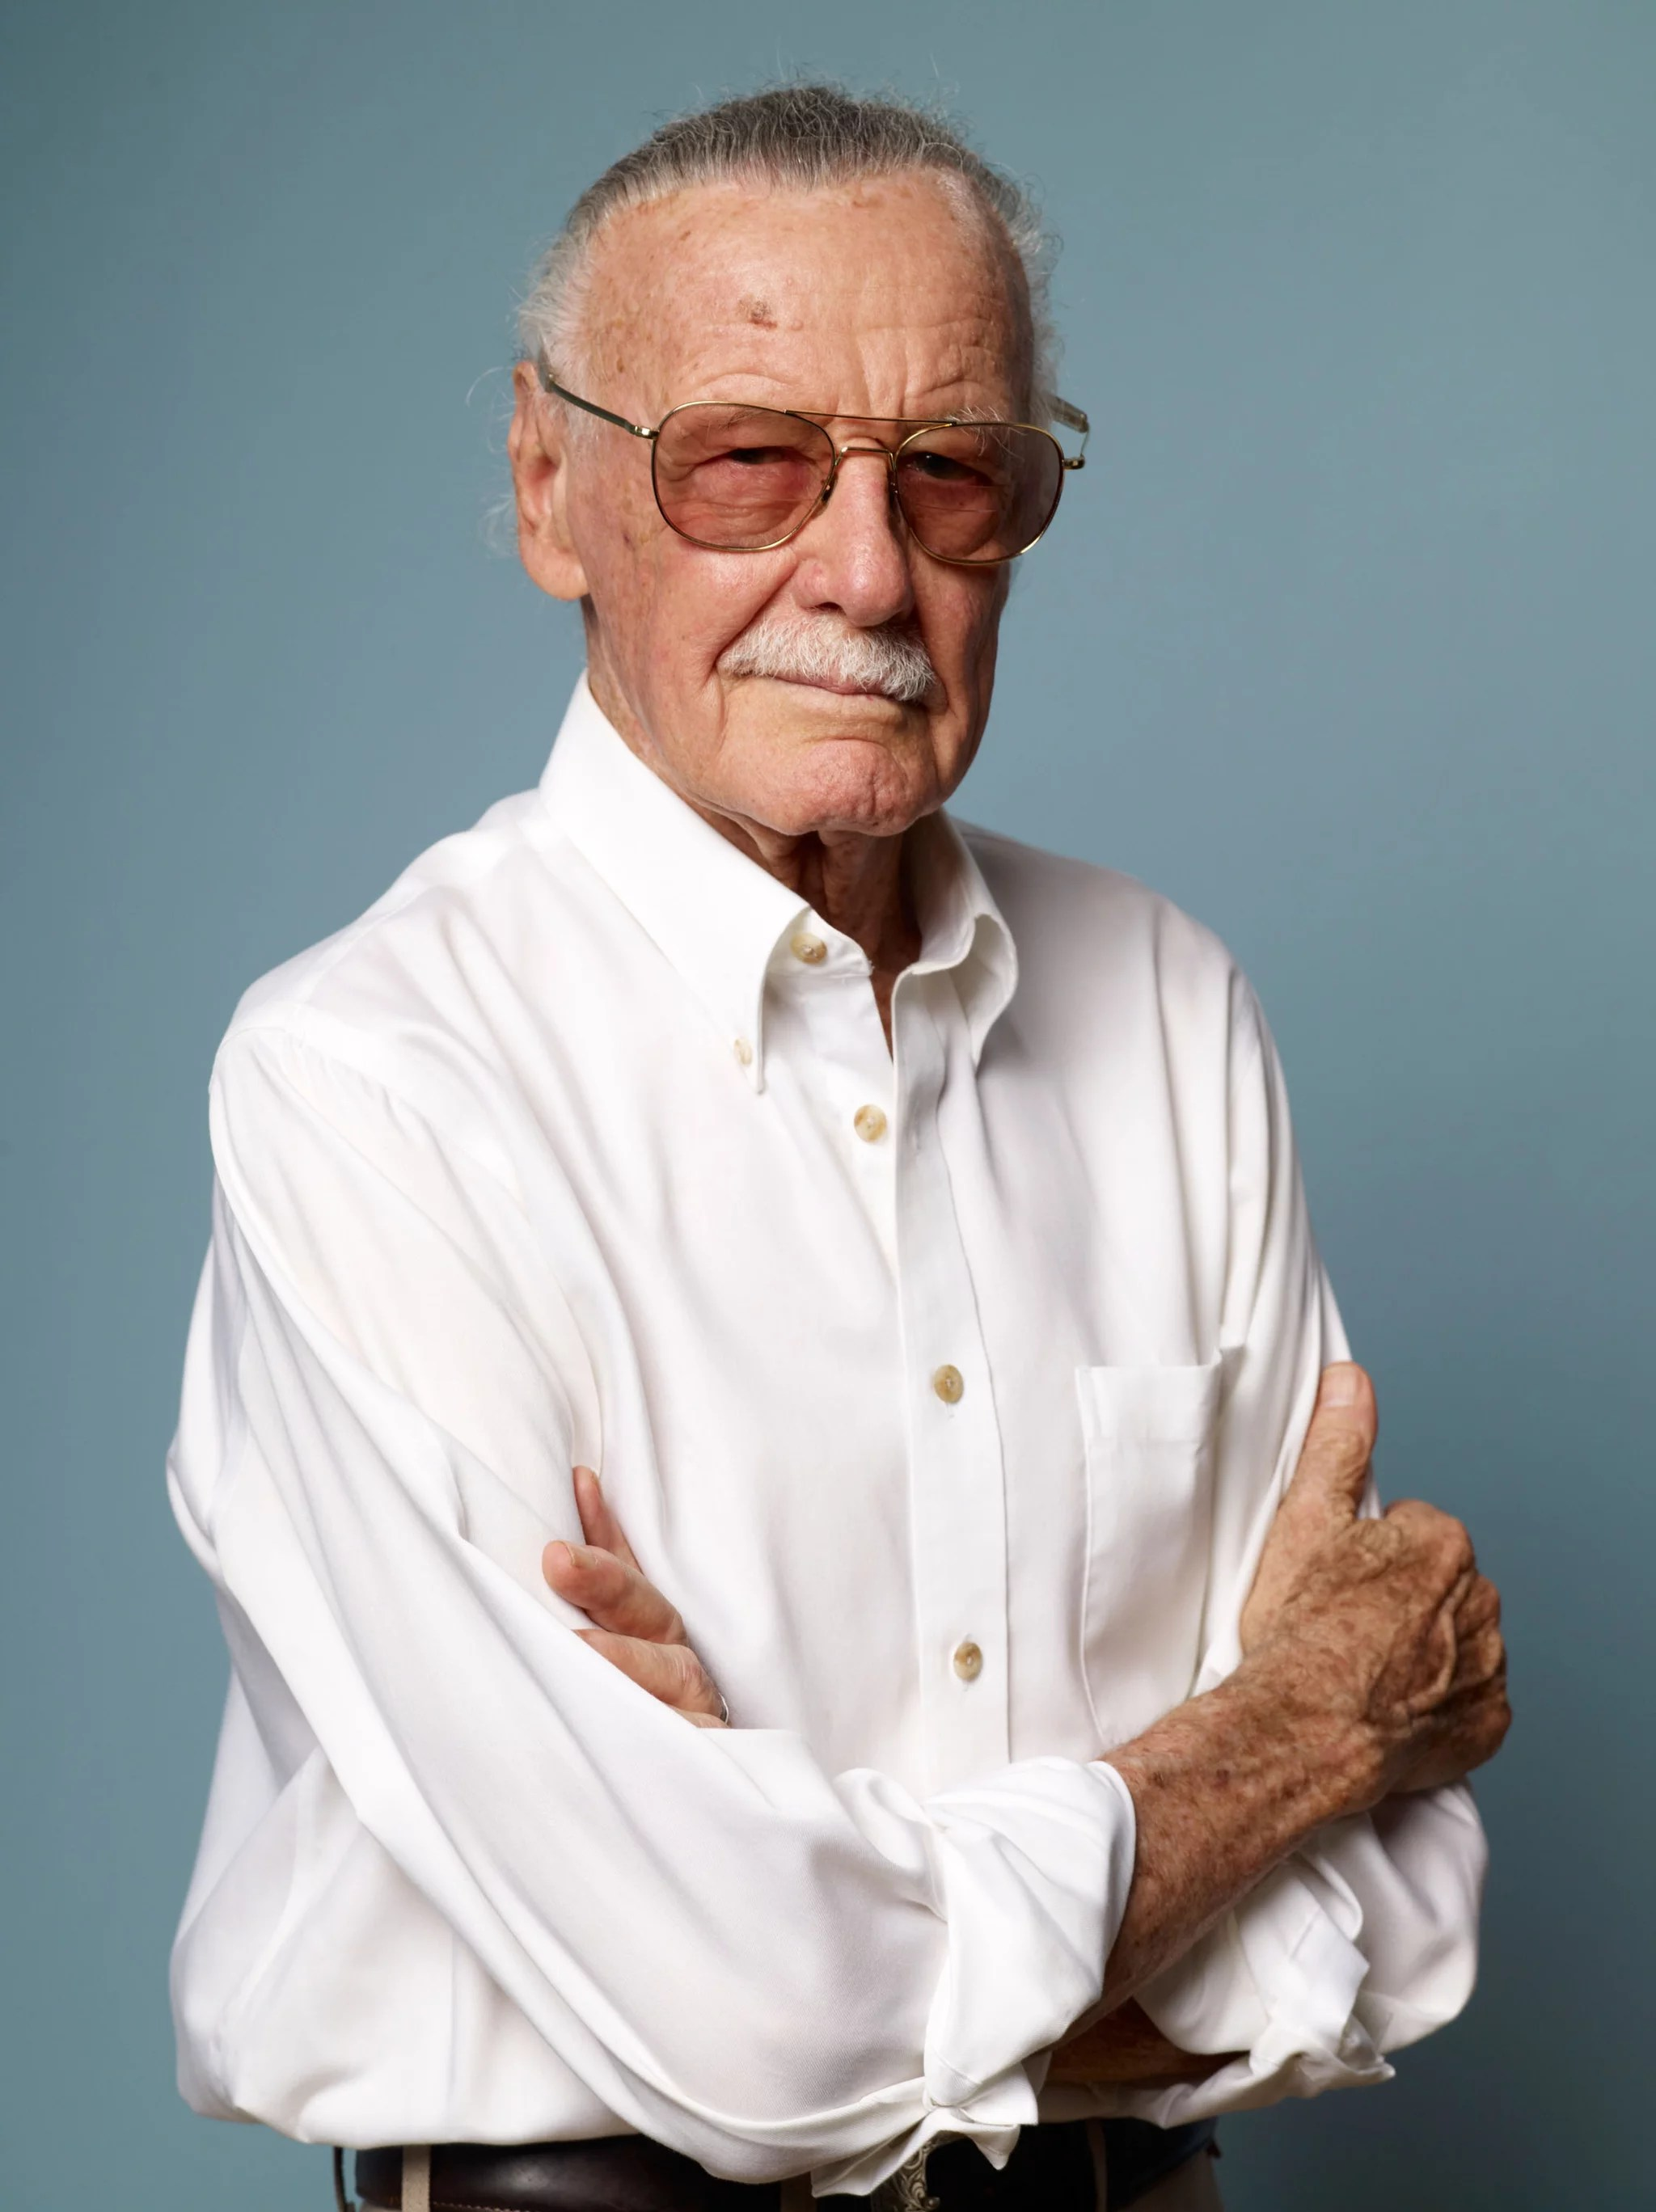 Moustache Wallpaper Hd Stan Lee Dead Popsugar Celebrity